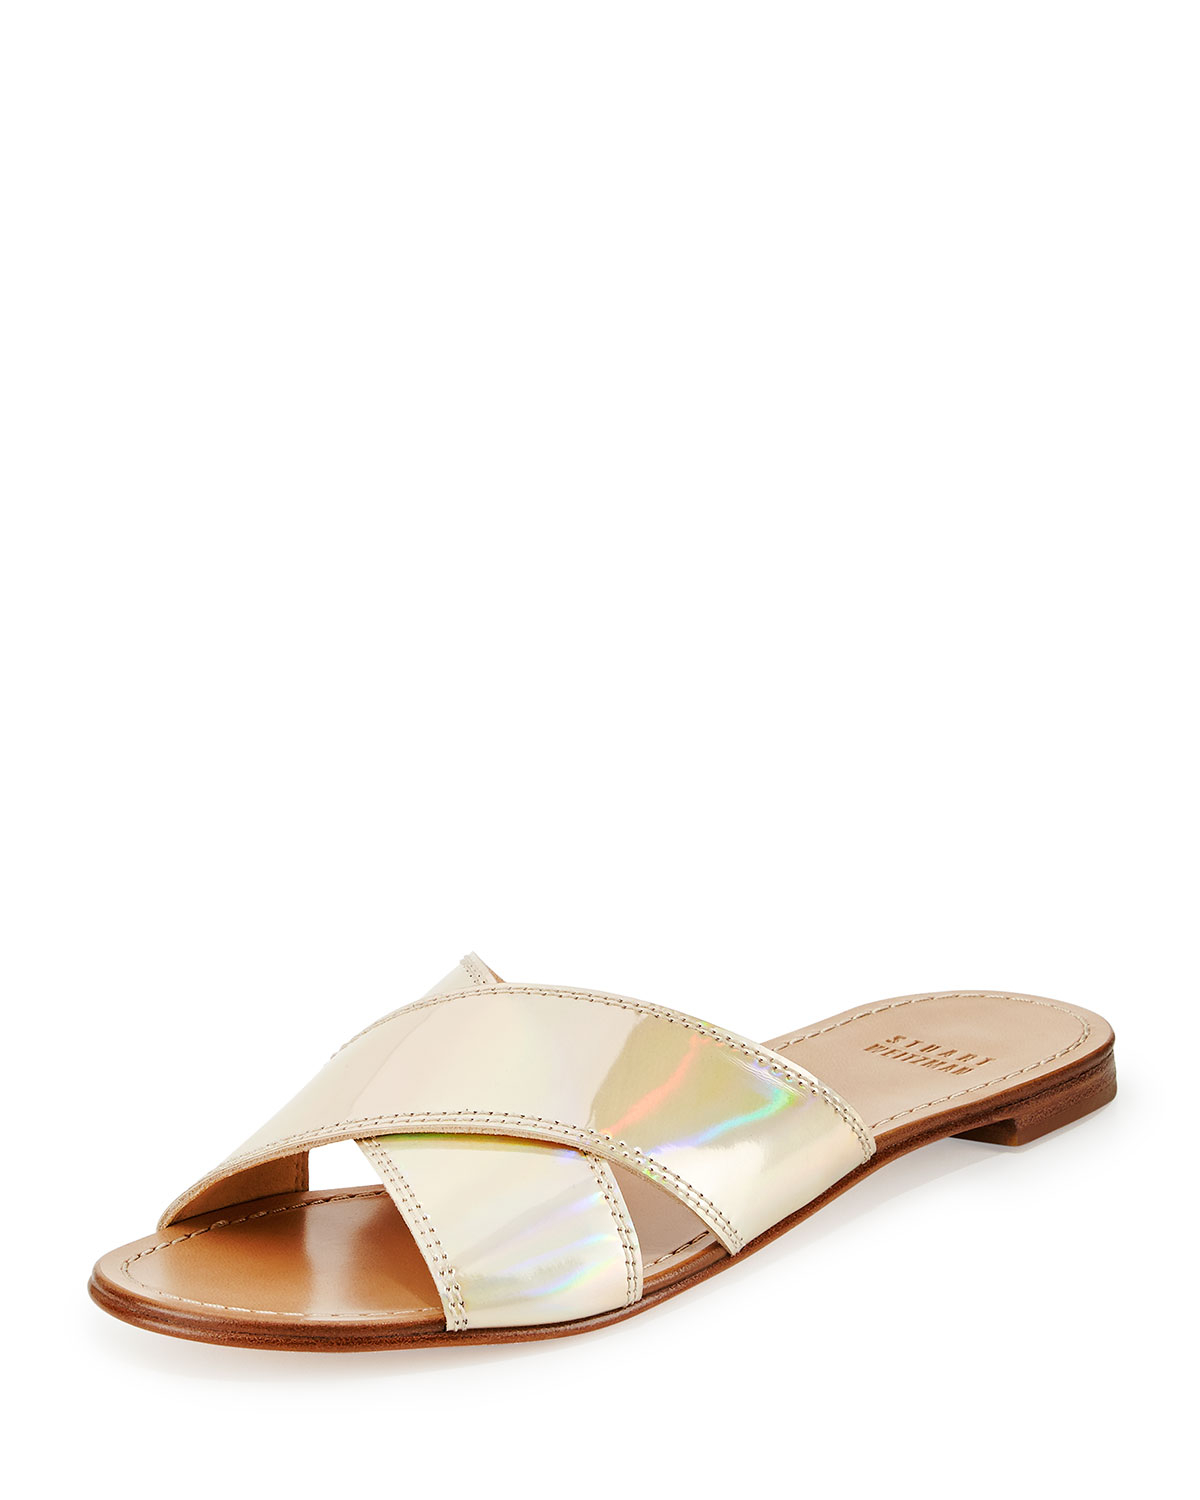 a883dde9959 Lyst - Stuart Weitzman Byway Criss-Cross Sandals in Metallic